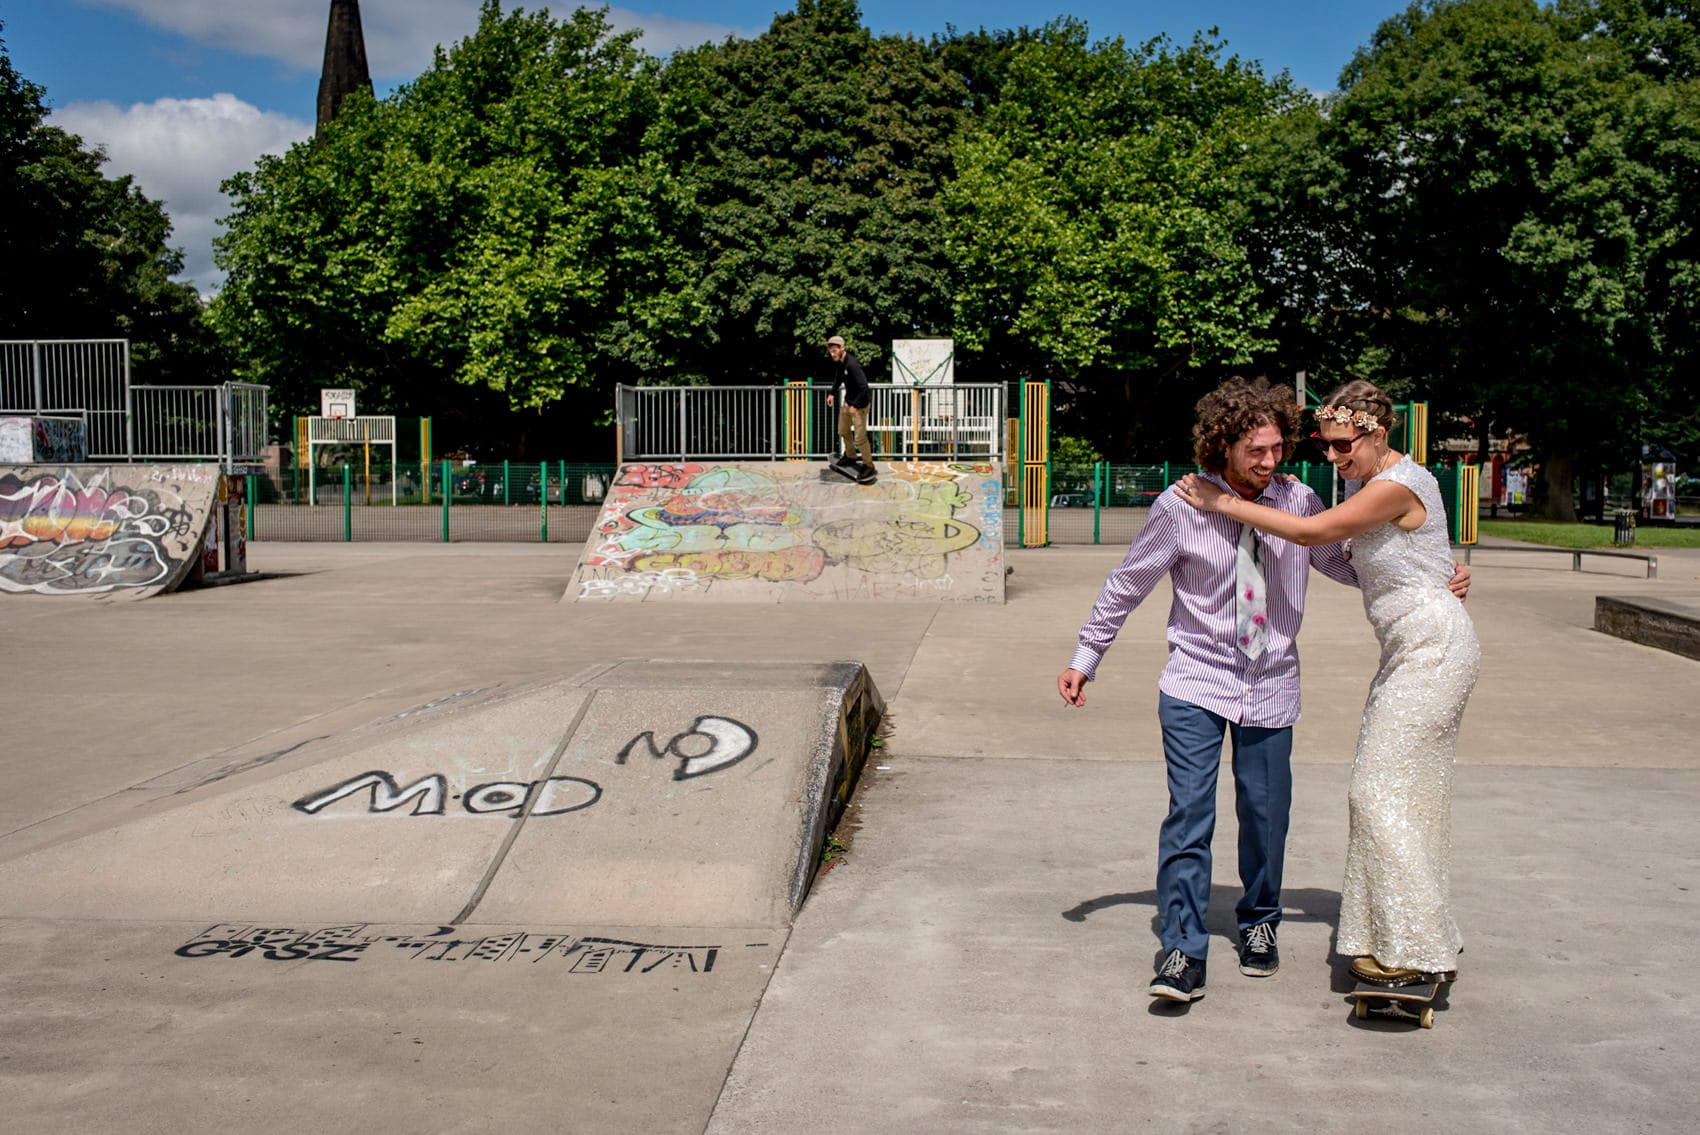 bride and groom skateboarding at their wedding at the skate park